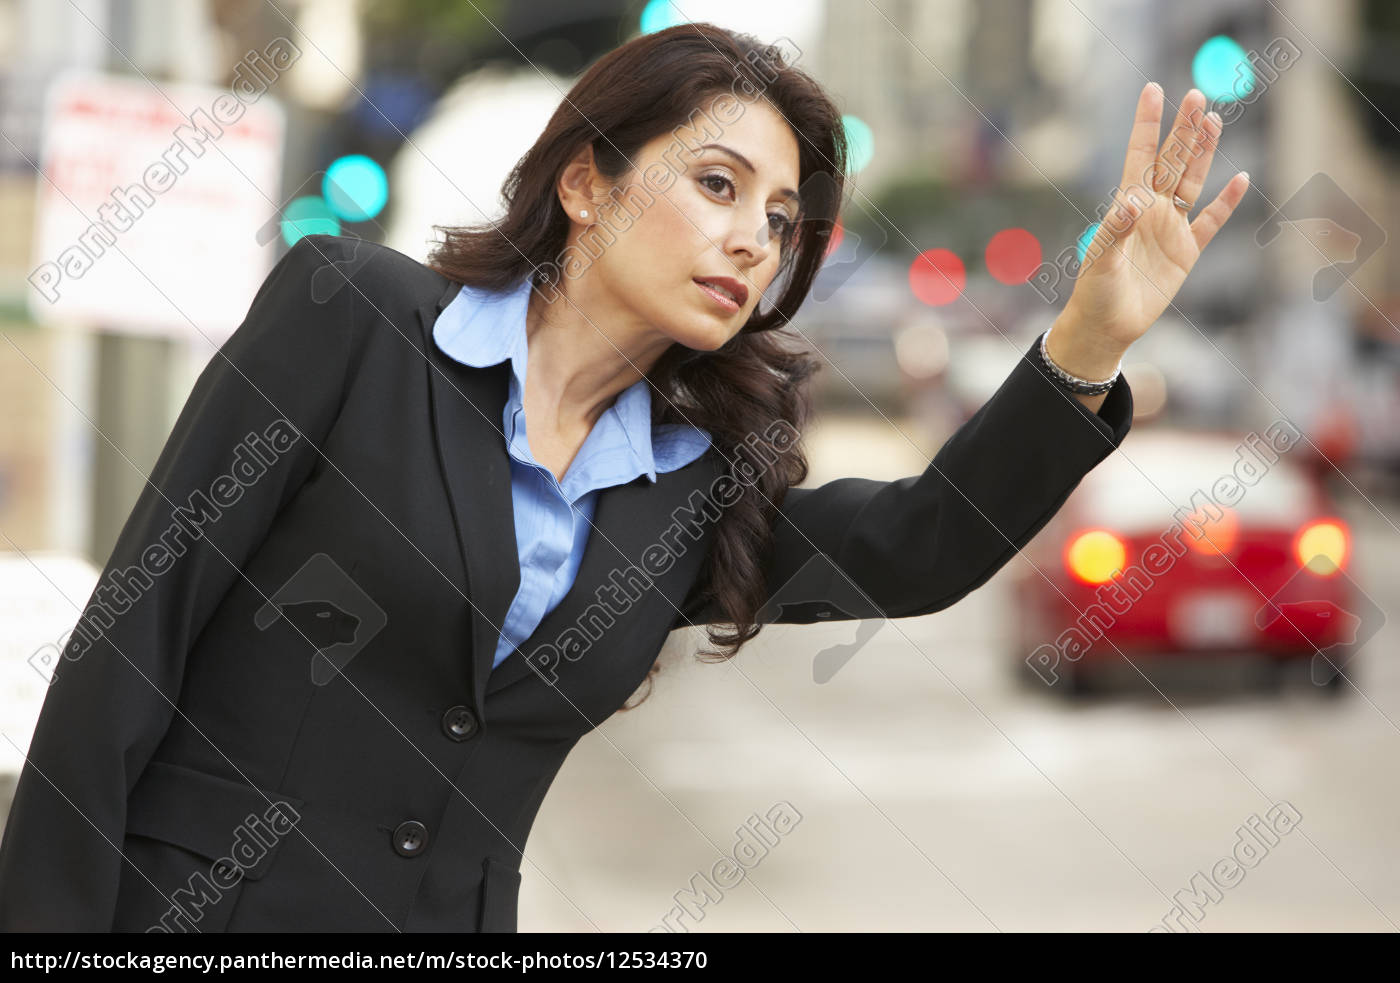 businesswoman, hailing, taxi, in, busy, street - 12534370